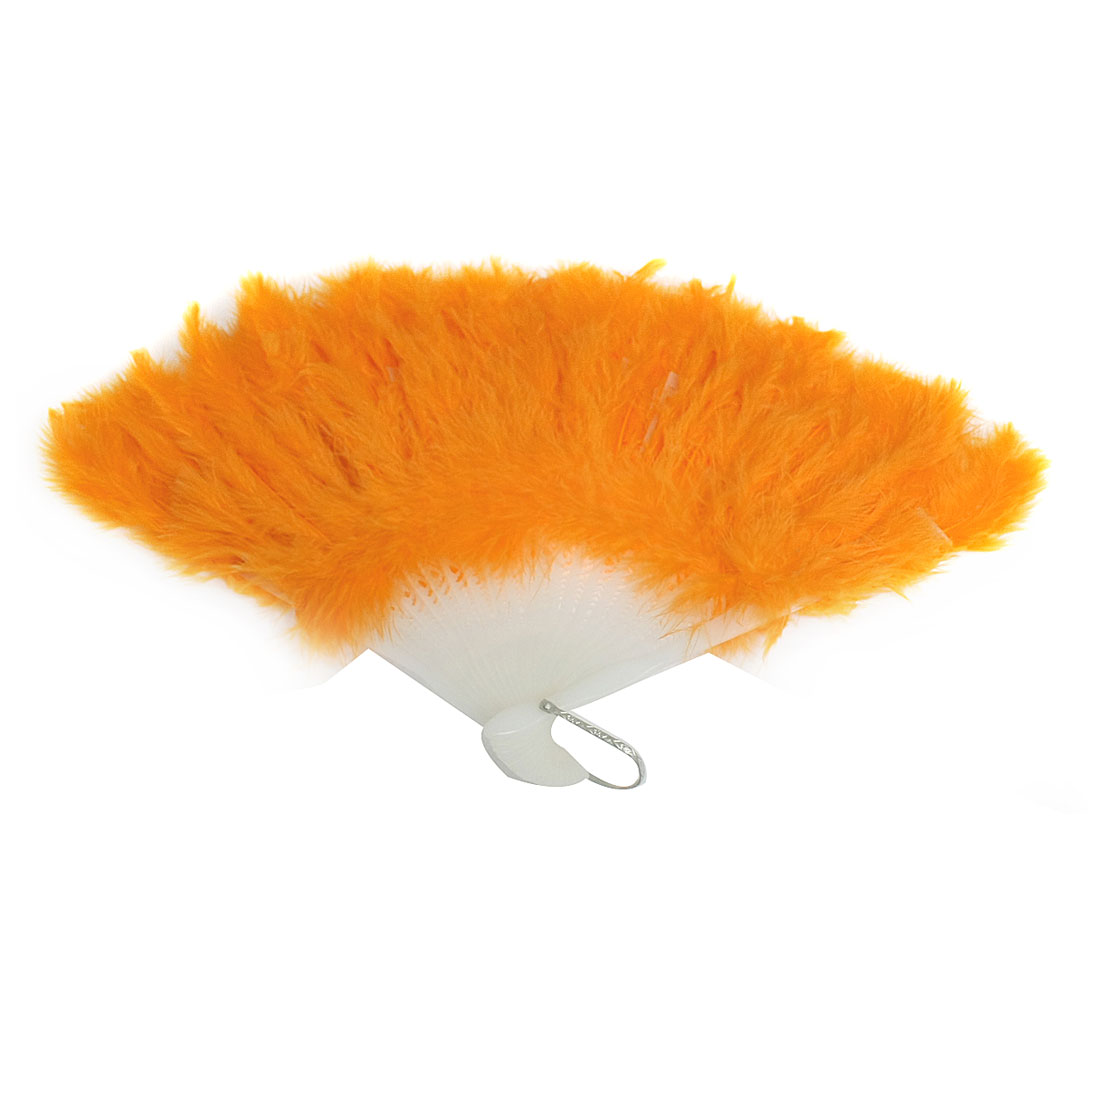 "16"" Open up Width Dancing Party Orange Feather Folding Hand Fan"